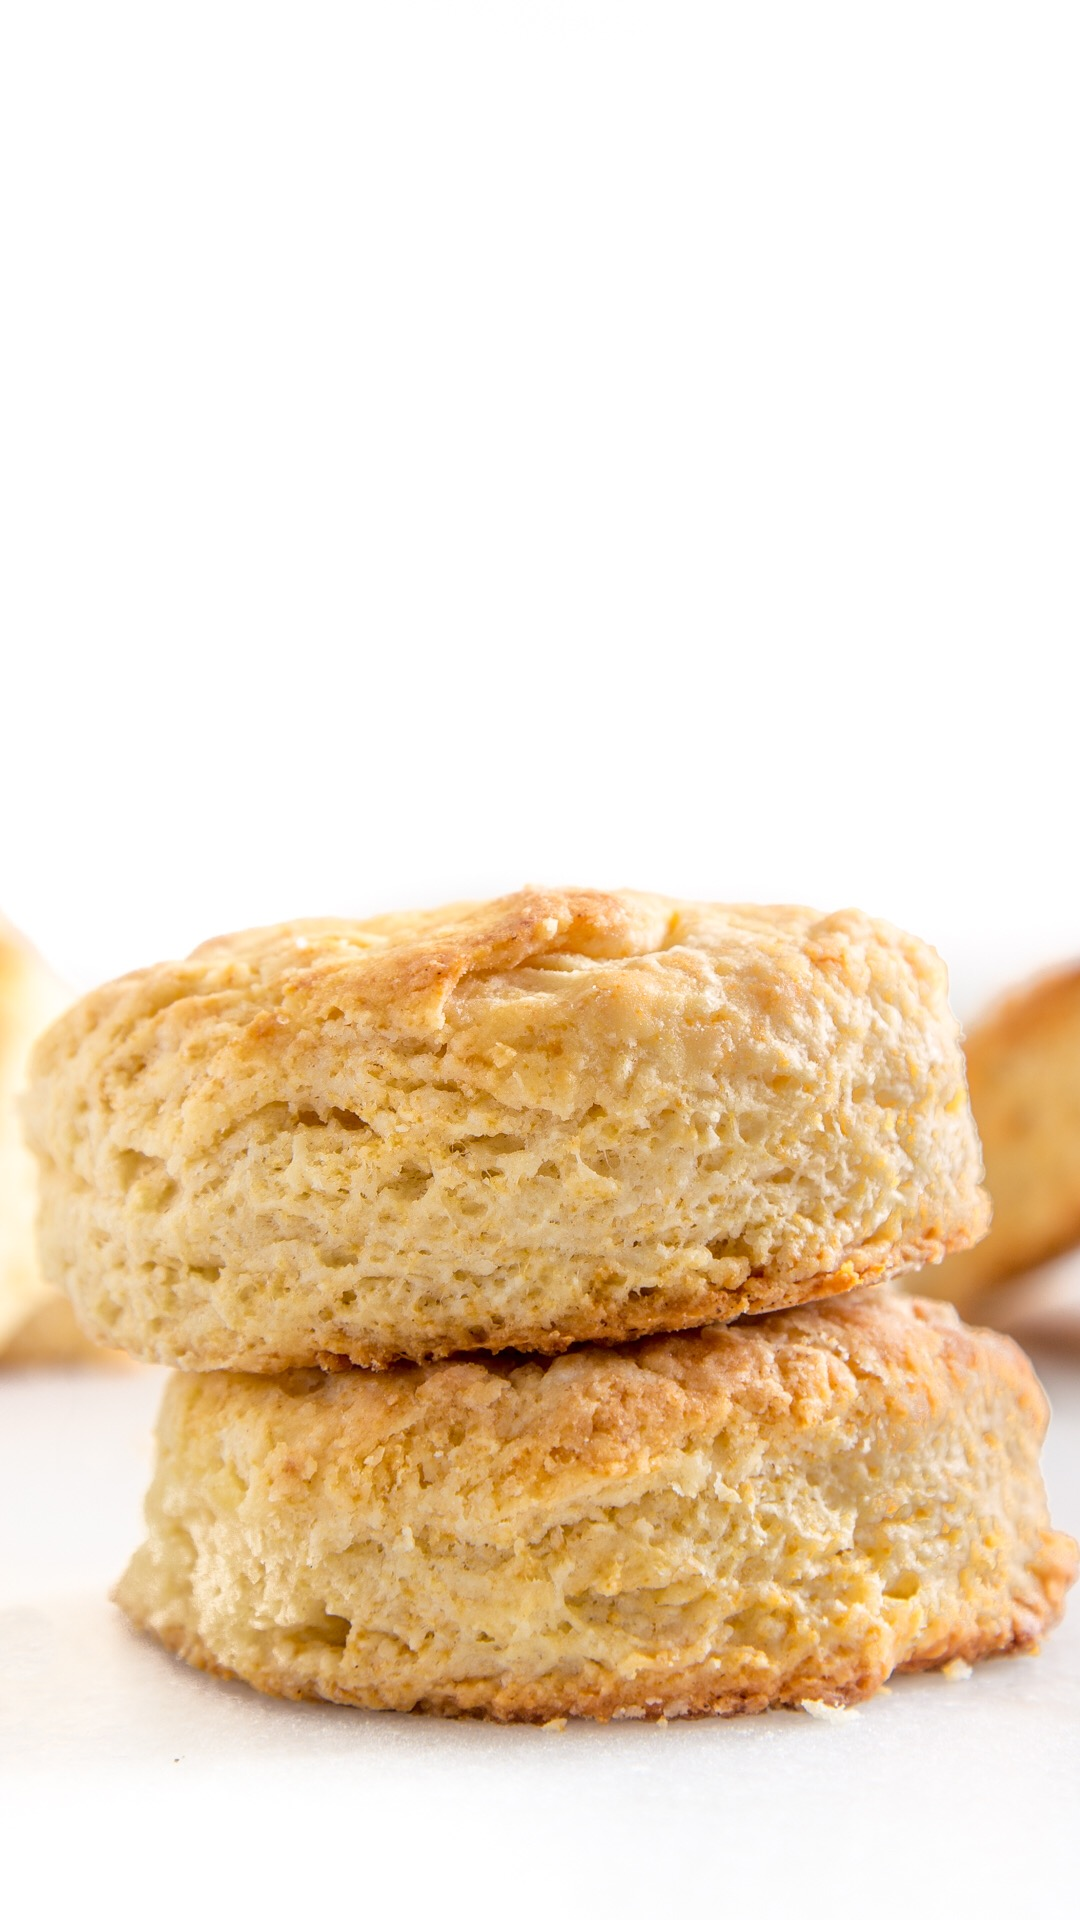 Homemade Biscuits 101